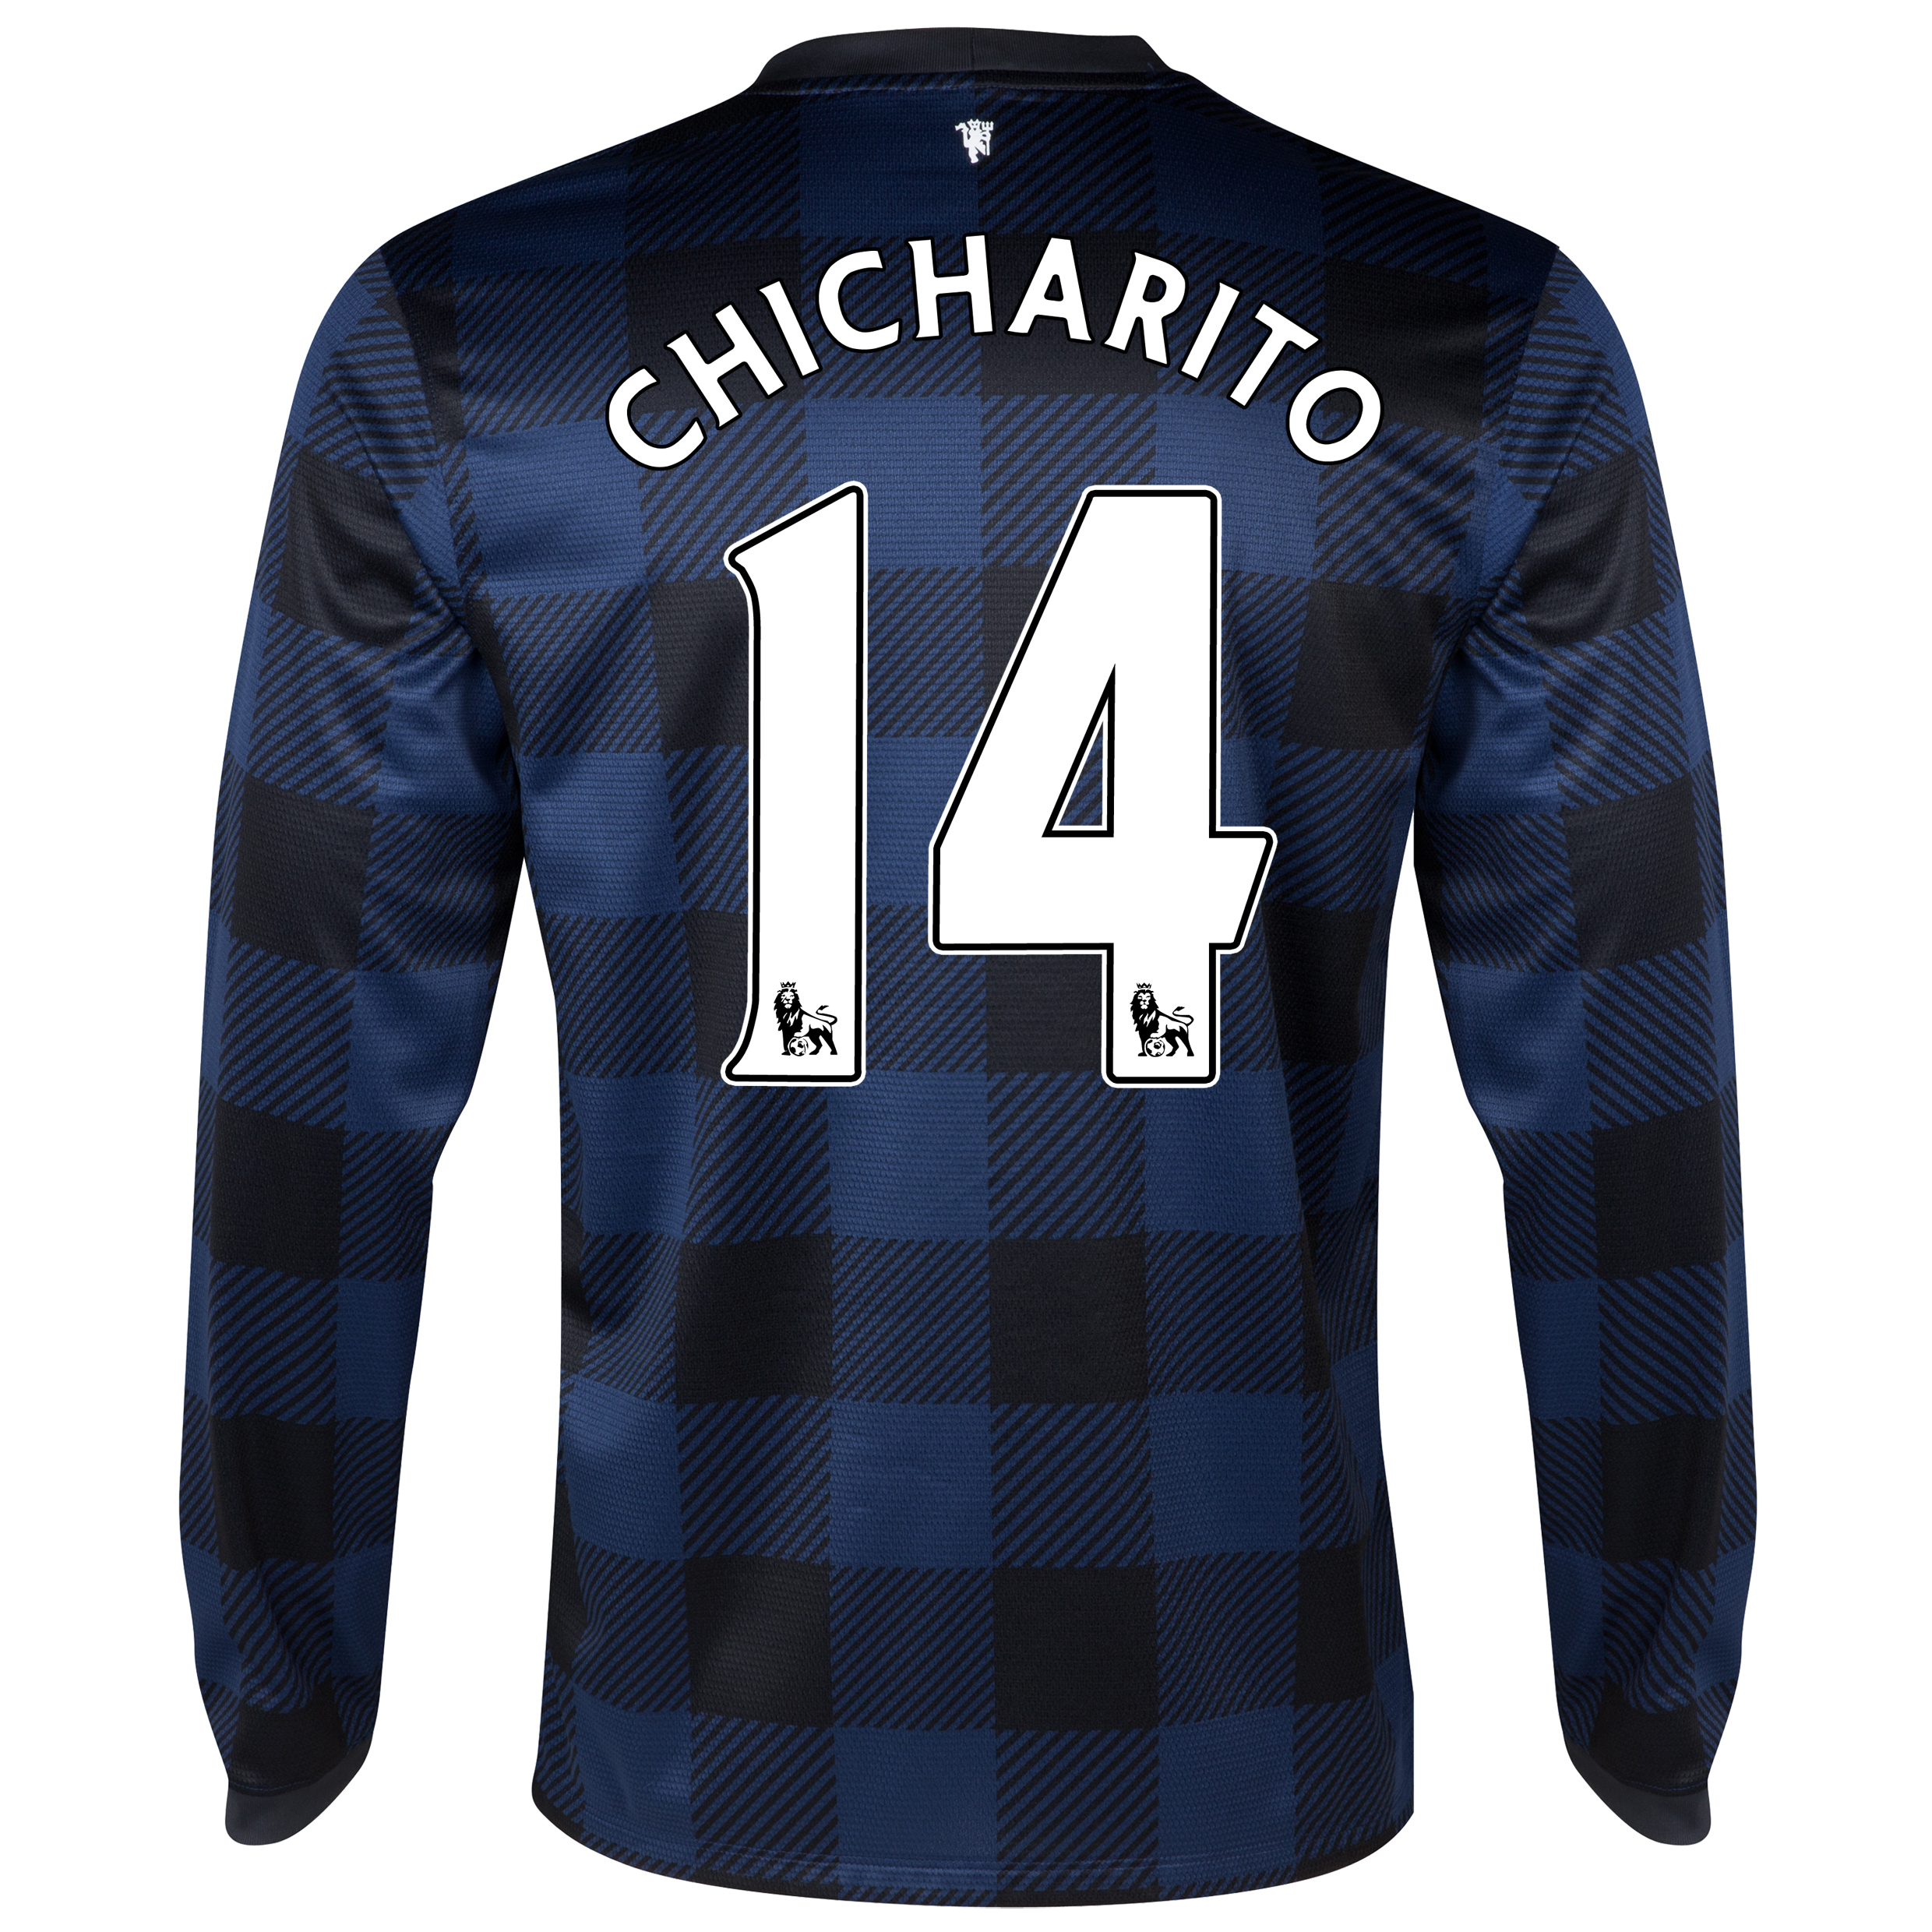 Manchester United Away Shirt 2013/14 - Long Sleeved - Kids with Chicharito 14 printing